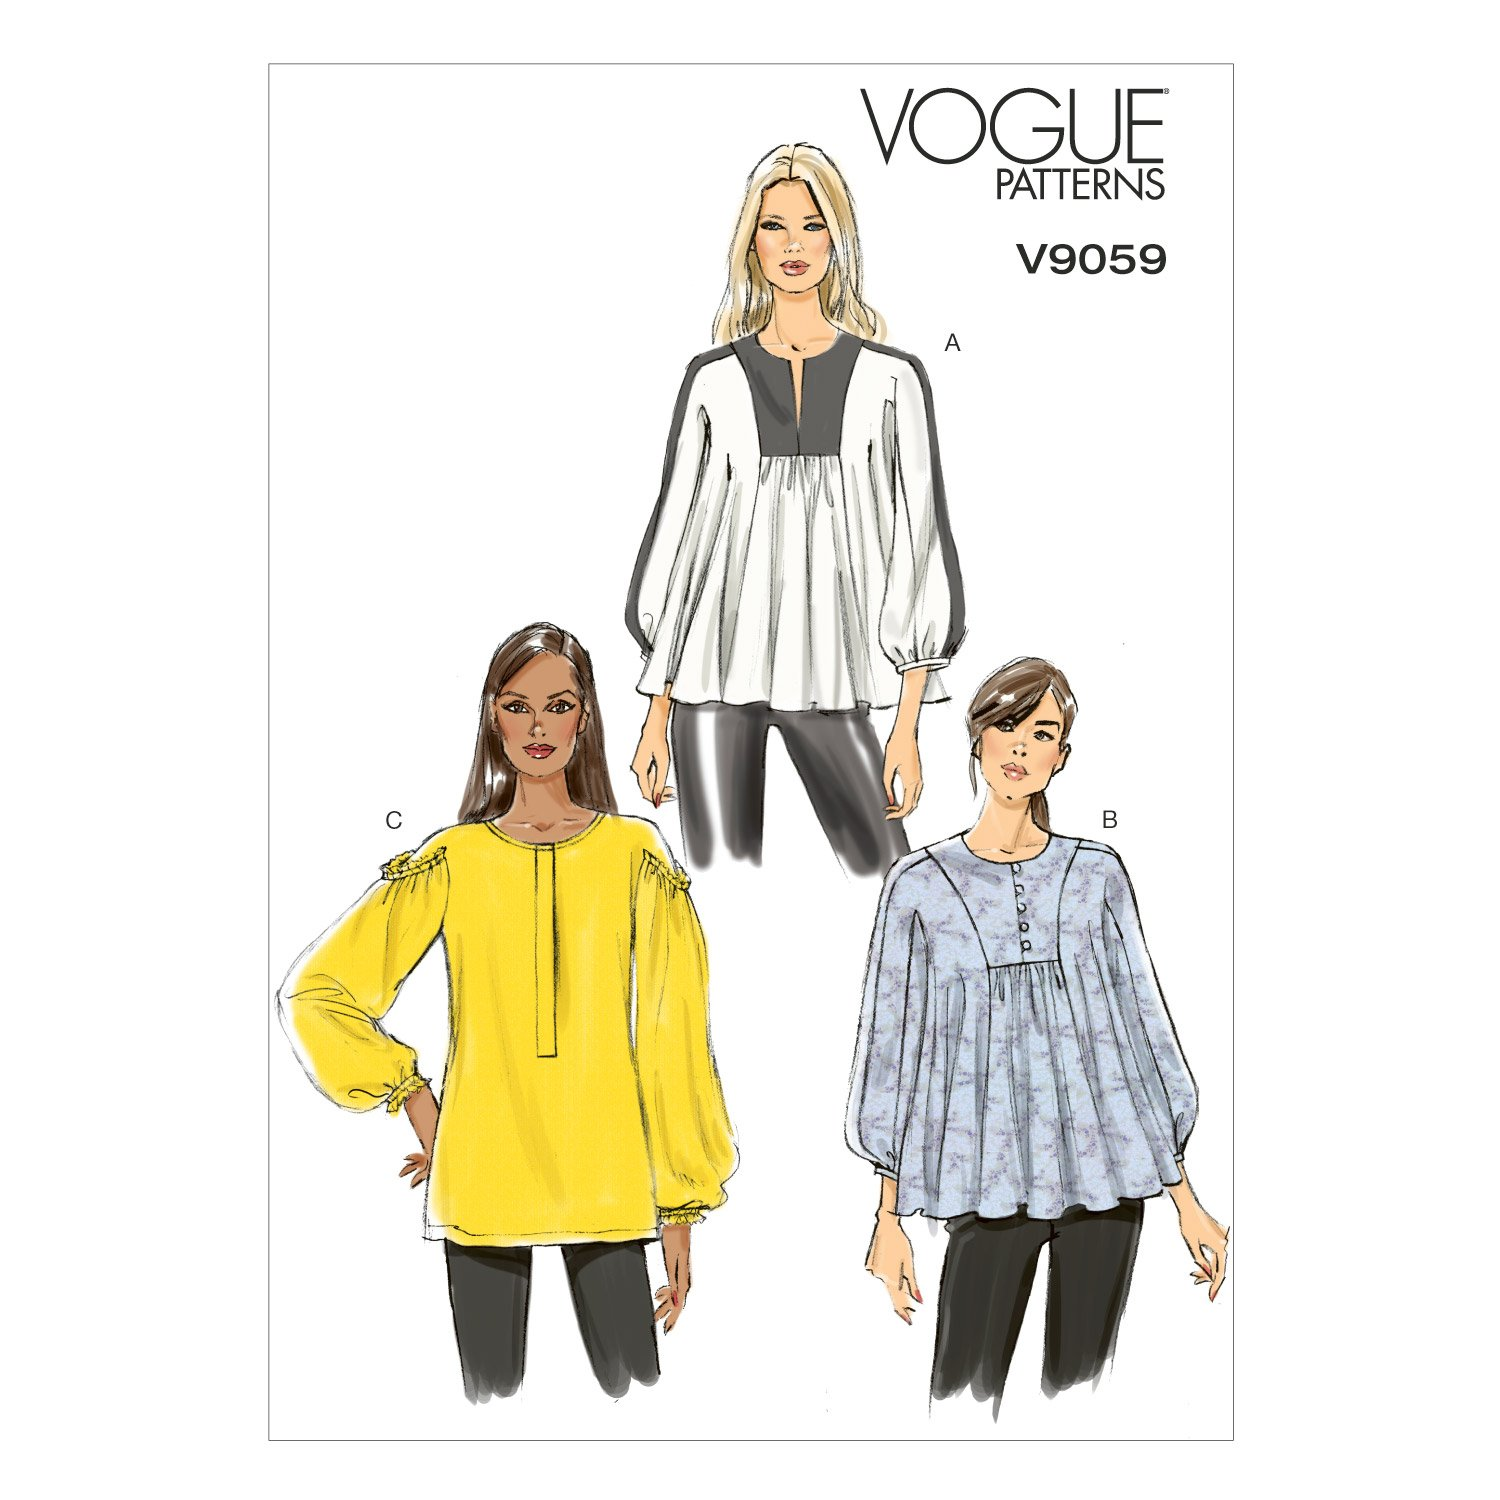 Vogue Patterns V9059 Misses' Top and Tunic Sewing Template, ZZ (LRG-XLG-XXL) by Vogue Patterns B00PH51KZW